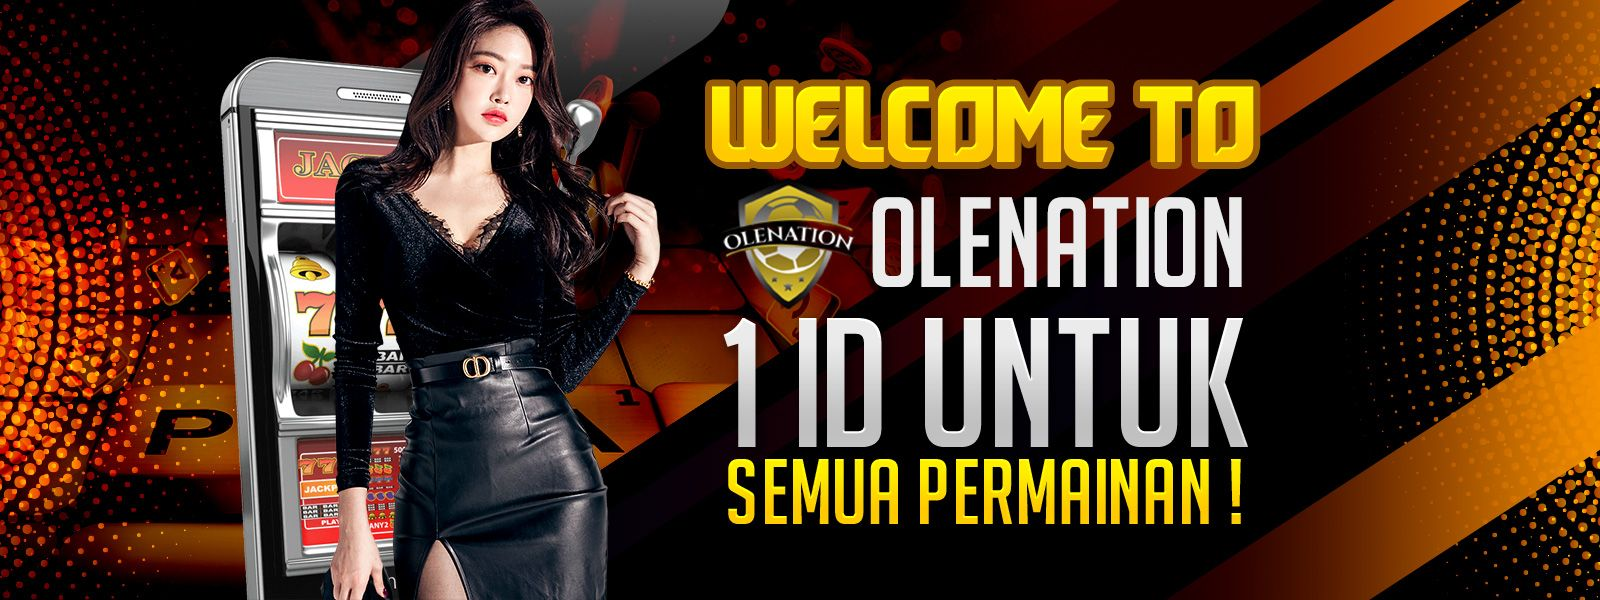 Welcome To Olenation